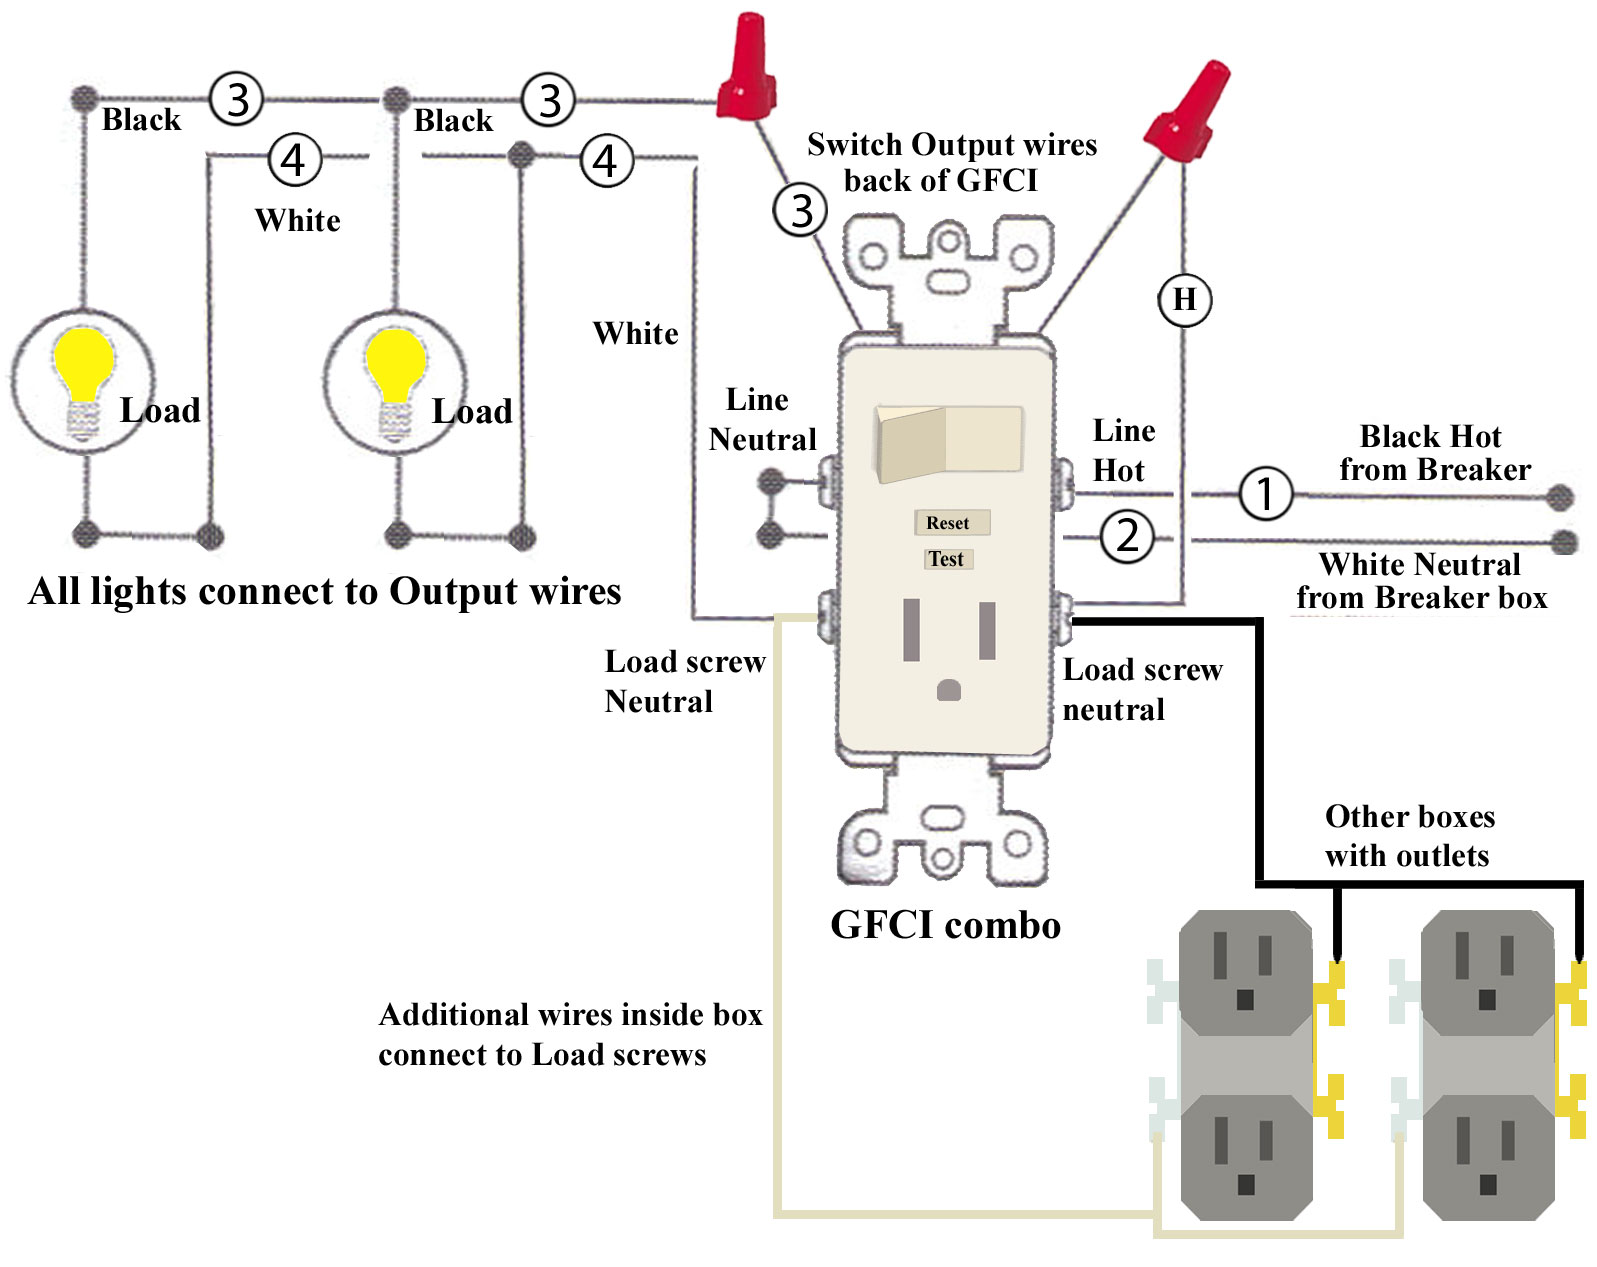 How To Install And Troubleshoot Gfci Ground Fault Breaker Wiring Diagram For Spas Larger Image